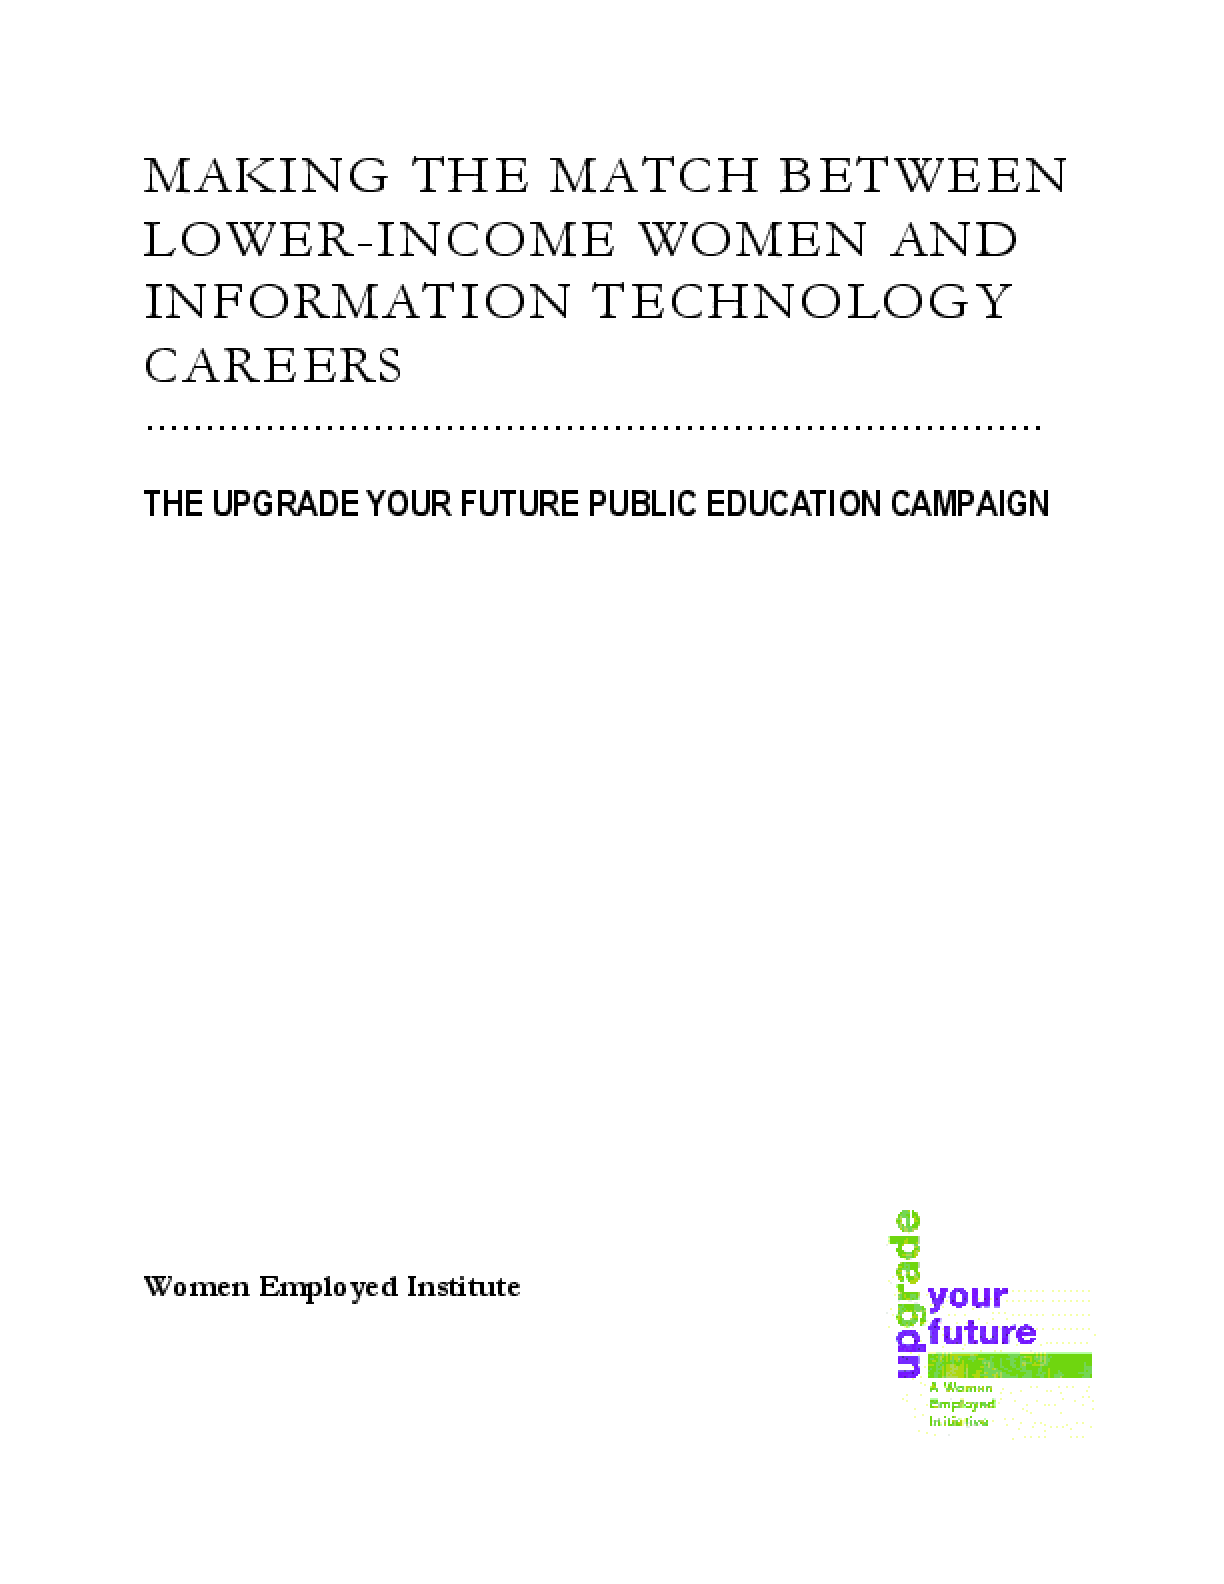 Making the Match Between Lower-Income Women and Information Technology